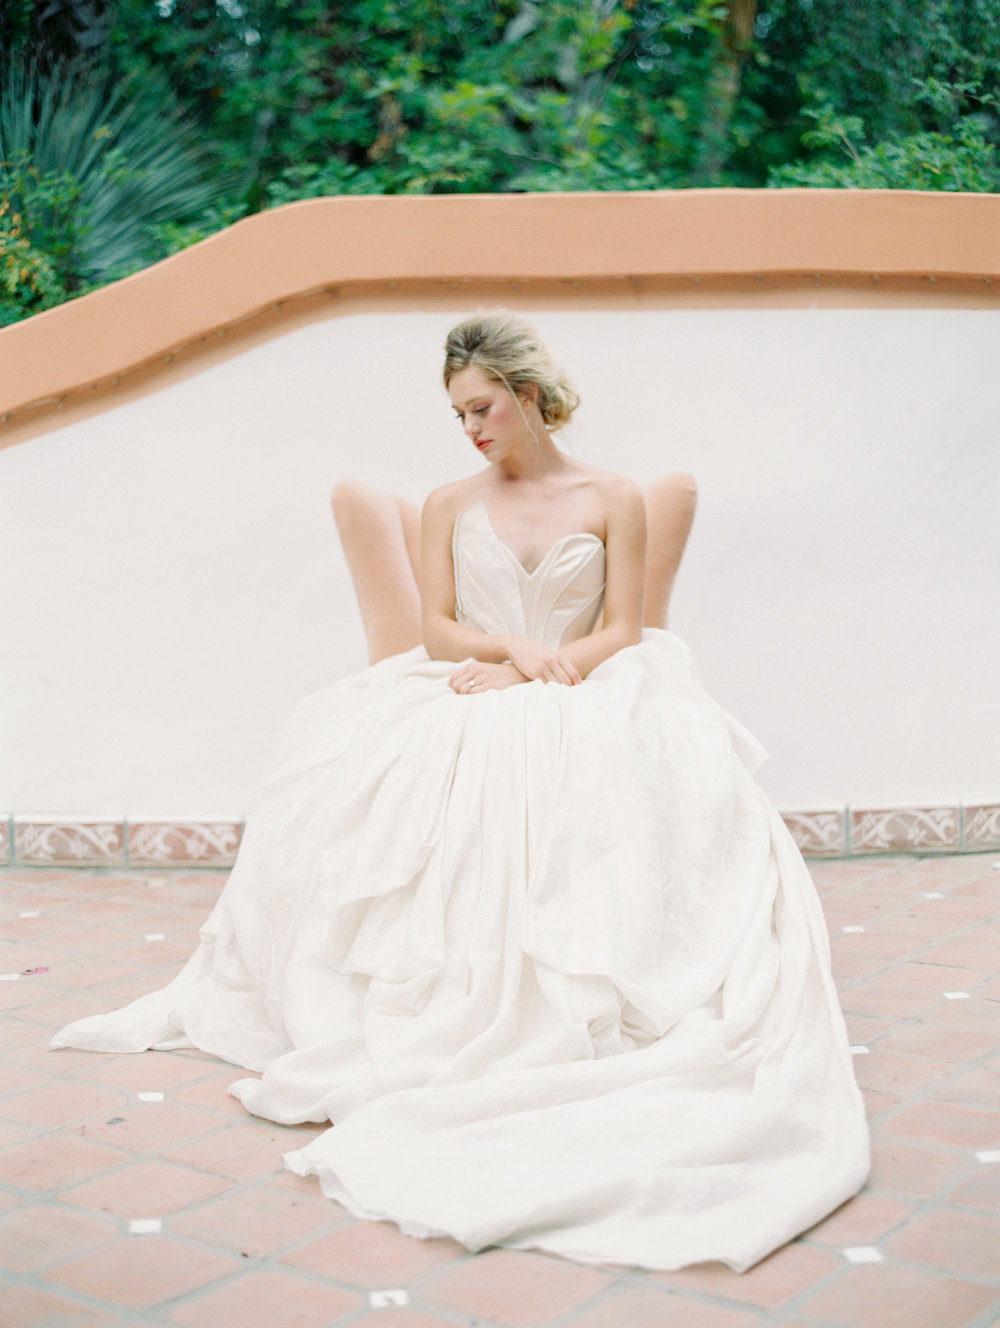 Jon Cu161- Rancho-Las-Lomas-california-film-wedding-bride-groom-spanish-peach.jpg